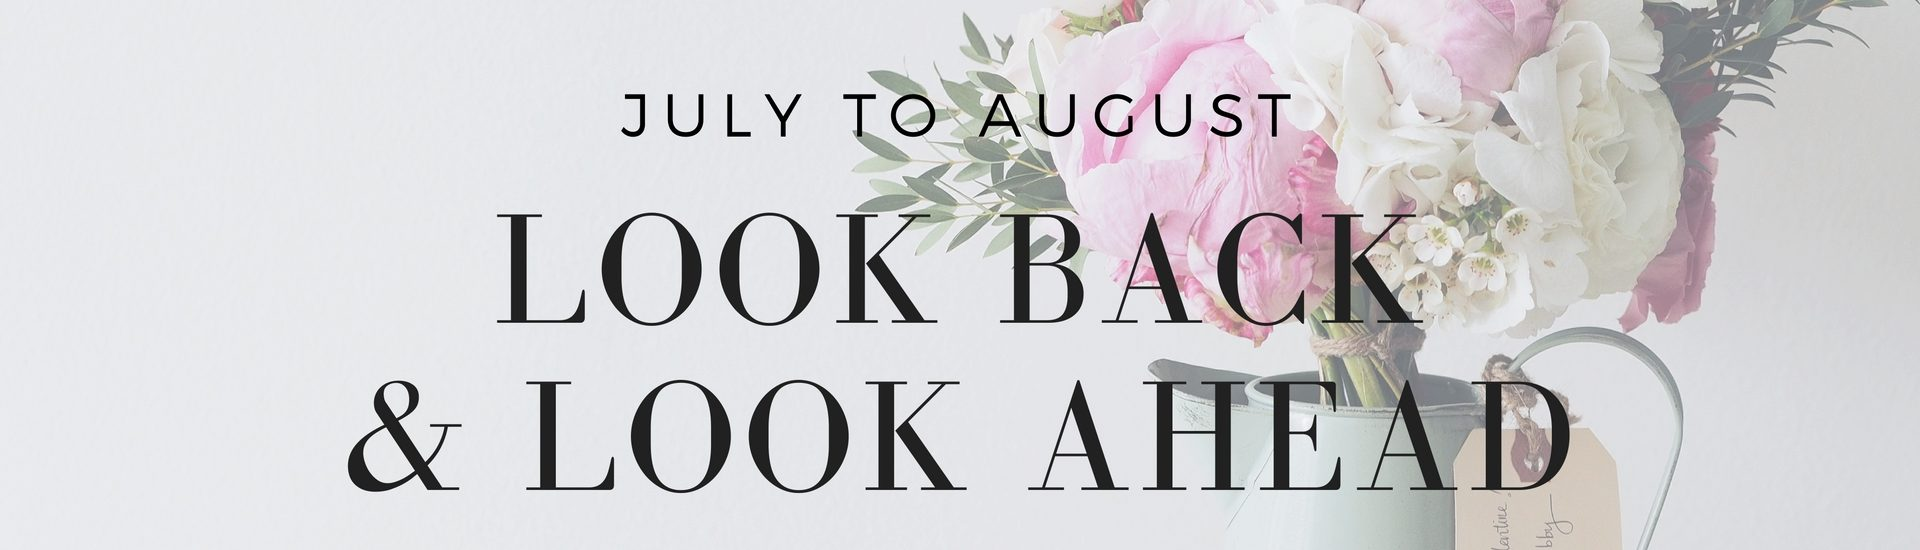 A look back at what I read and watched in July, and a look forward to what's on top of my to-read list for August - read on KateRaeDavis.com